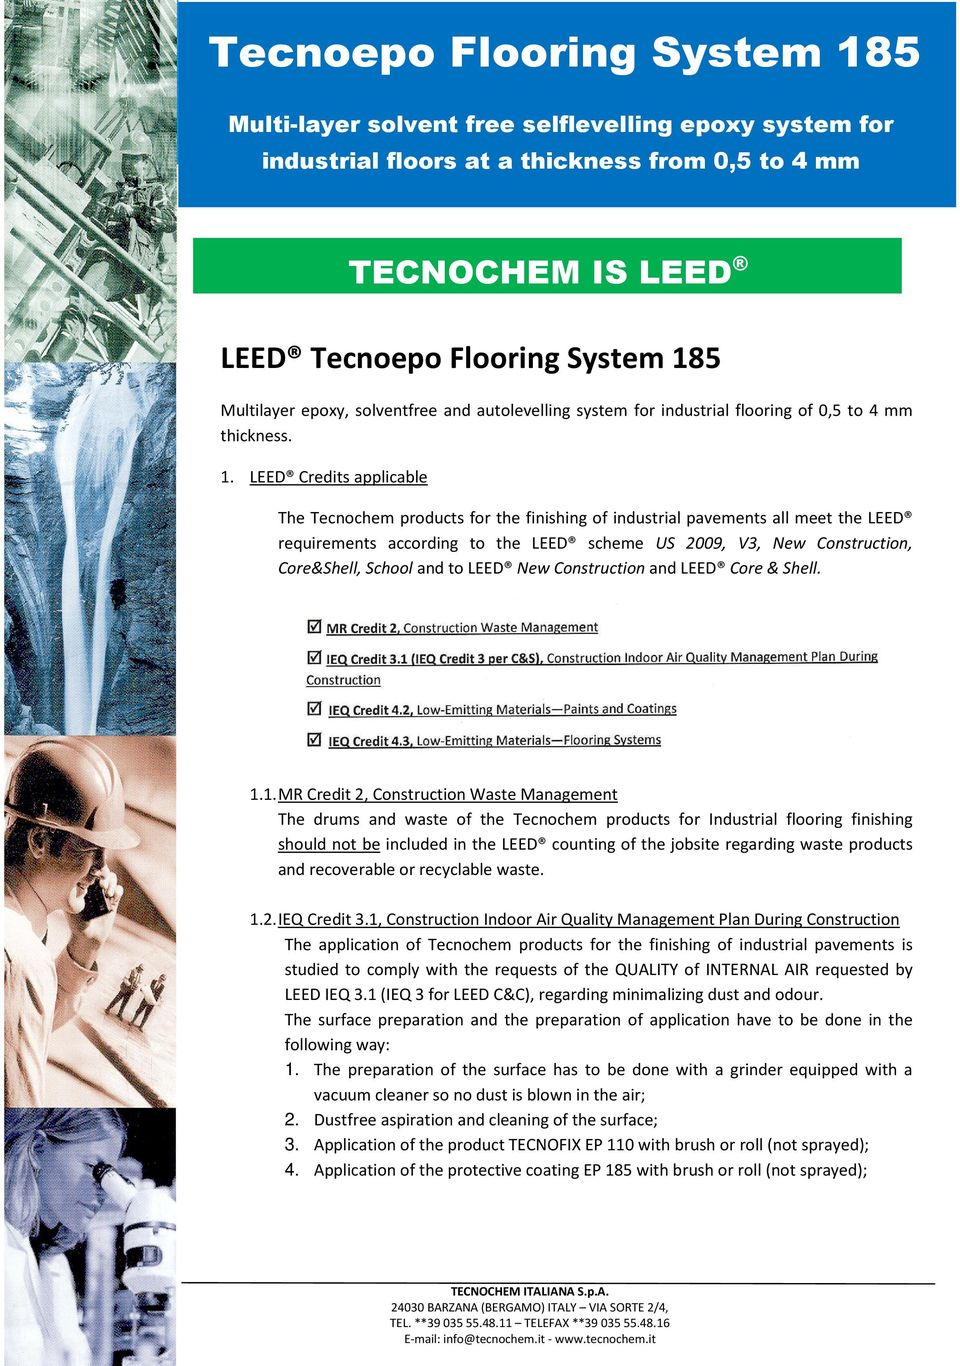 LEED Credits applicable The Tecnochem products for the finishing of industrial pavements all meet the LEED requirements according to the LEED scheme US 2009, V3, New Construction, Core&Shell, School